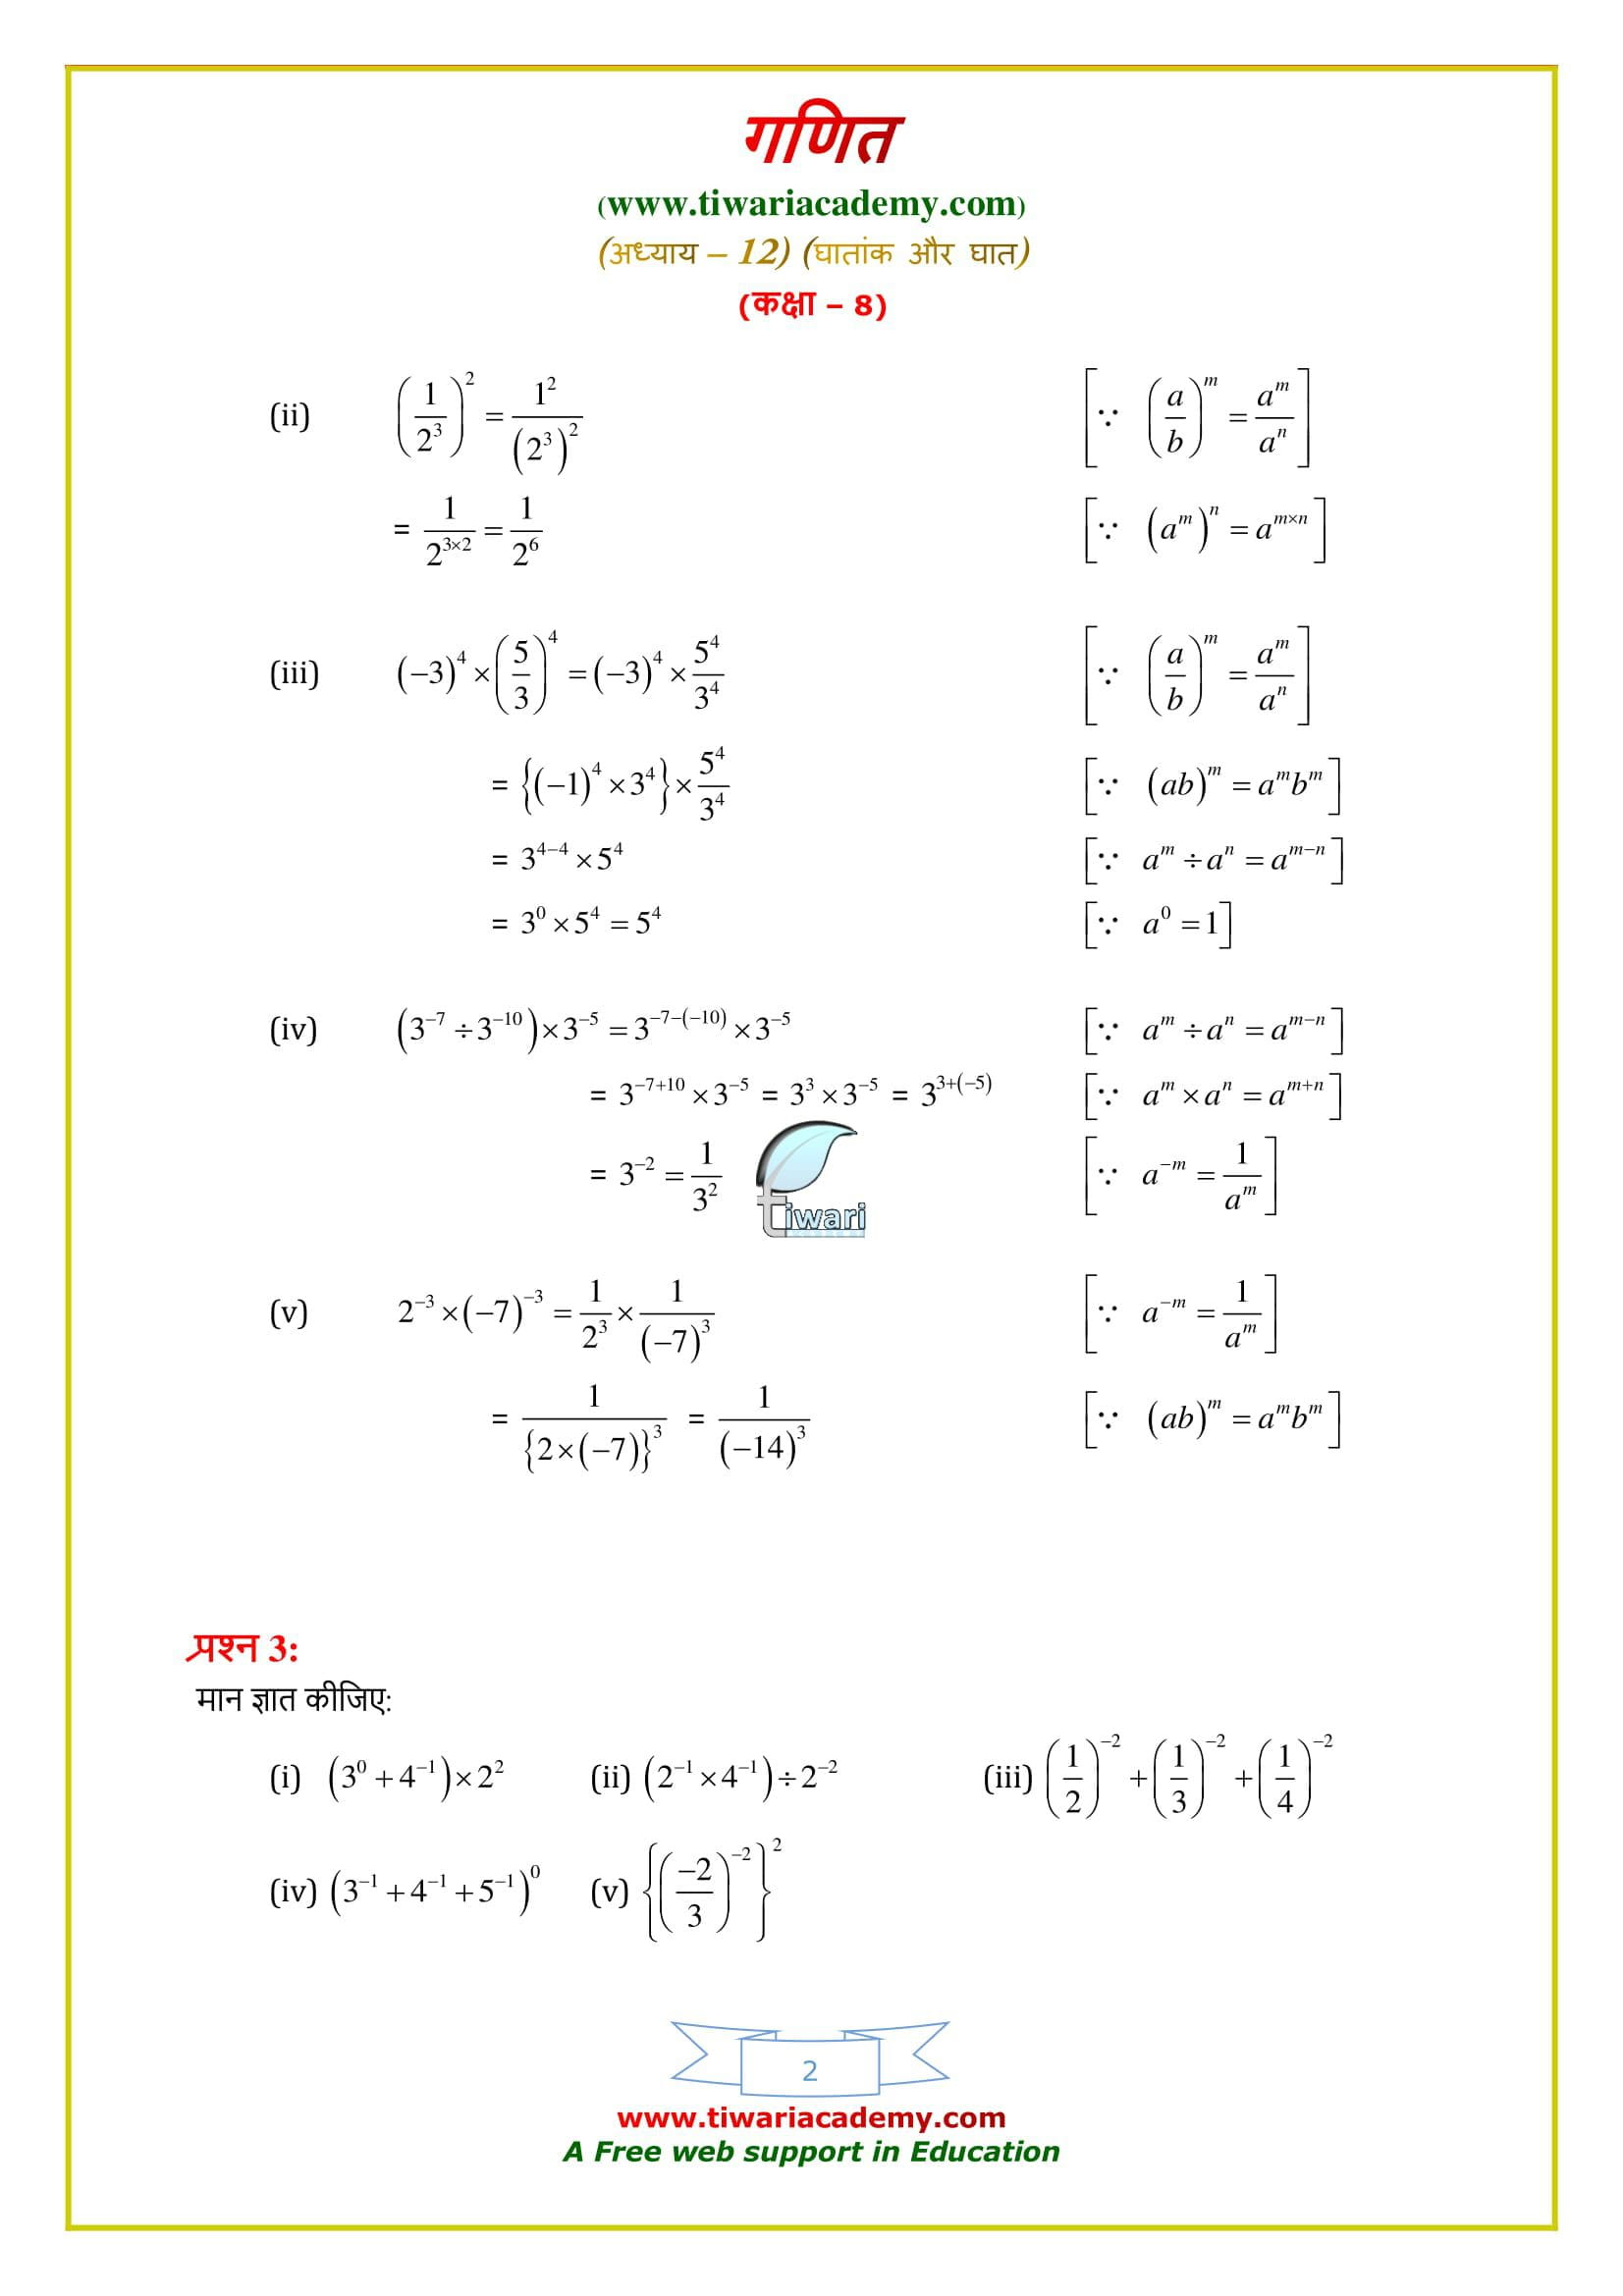 Class 8 Maths Exercise 12.1 solutions free to use online